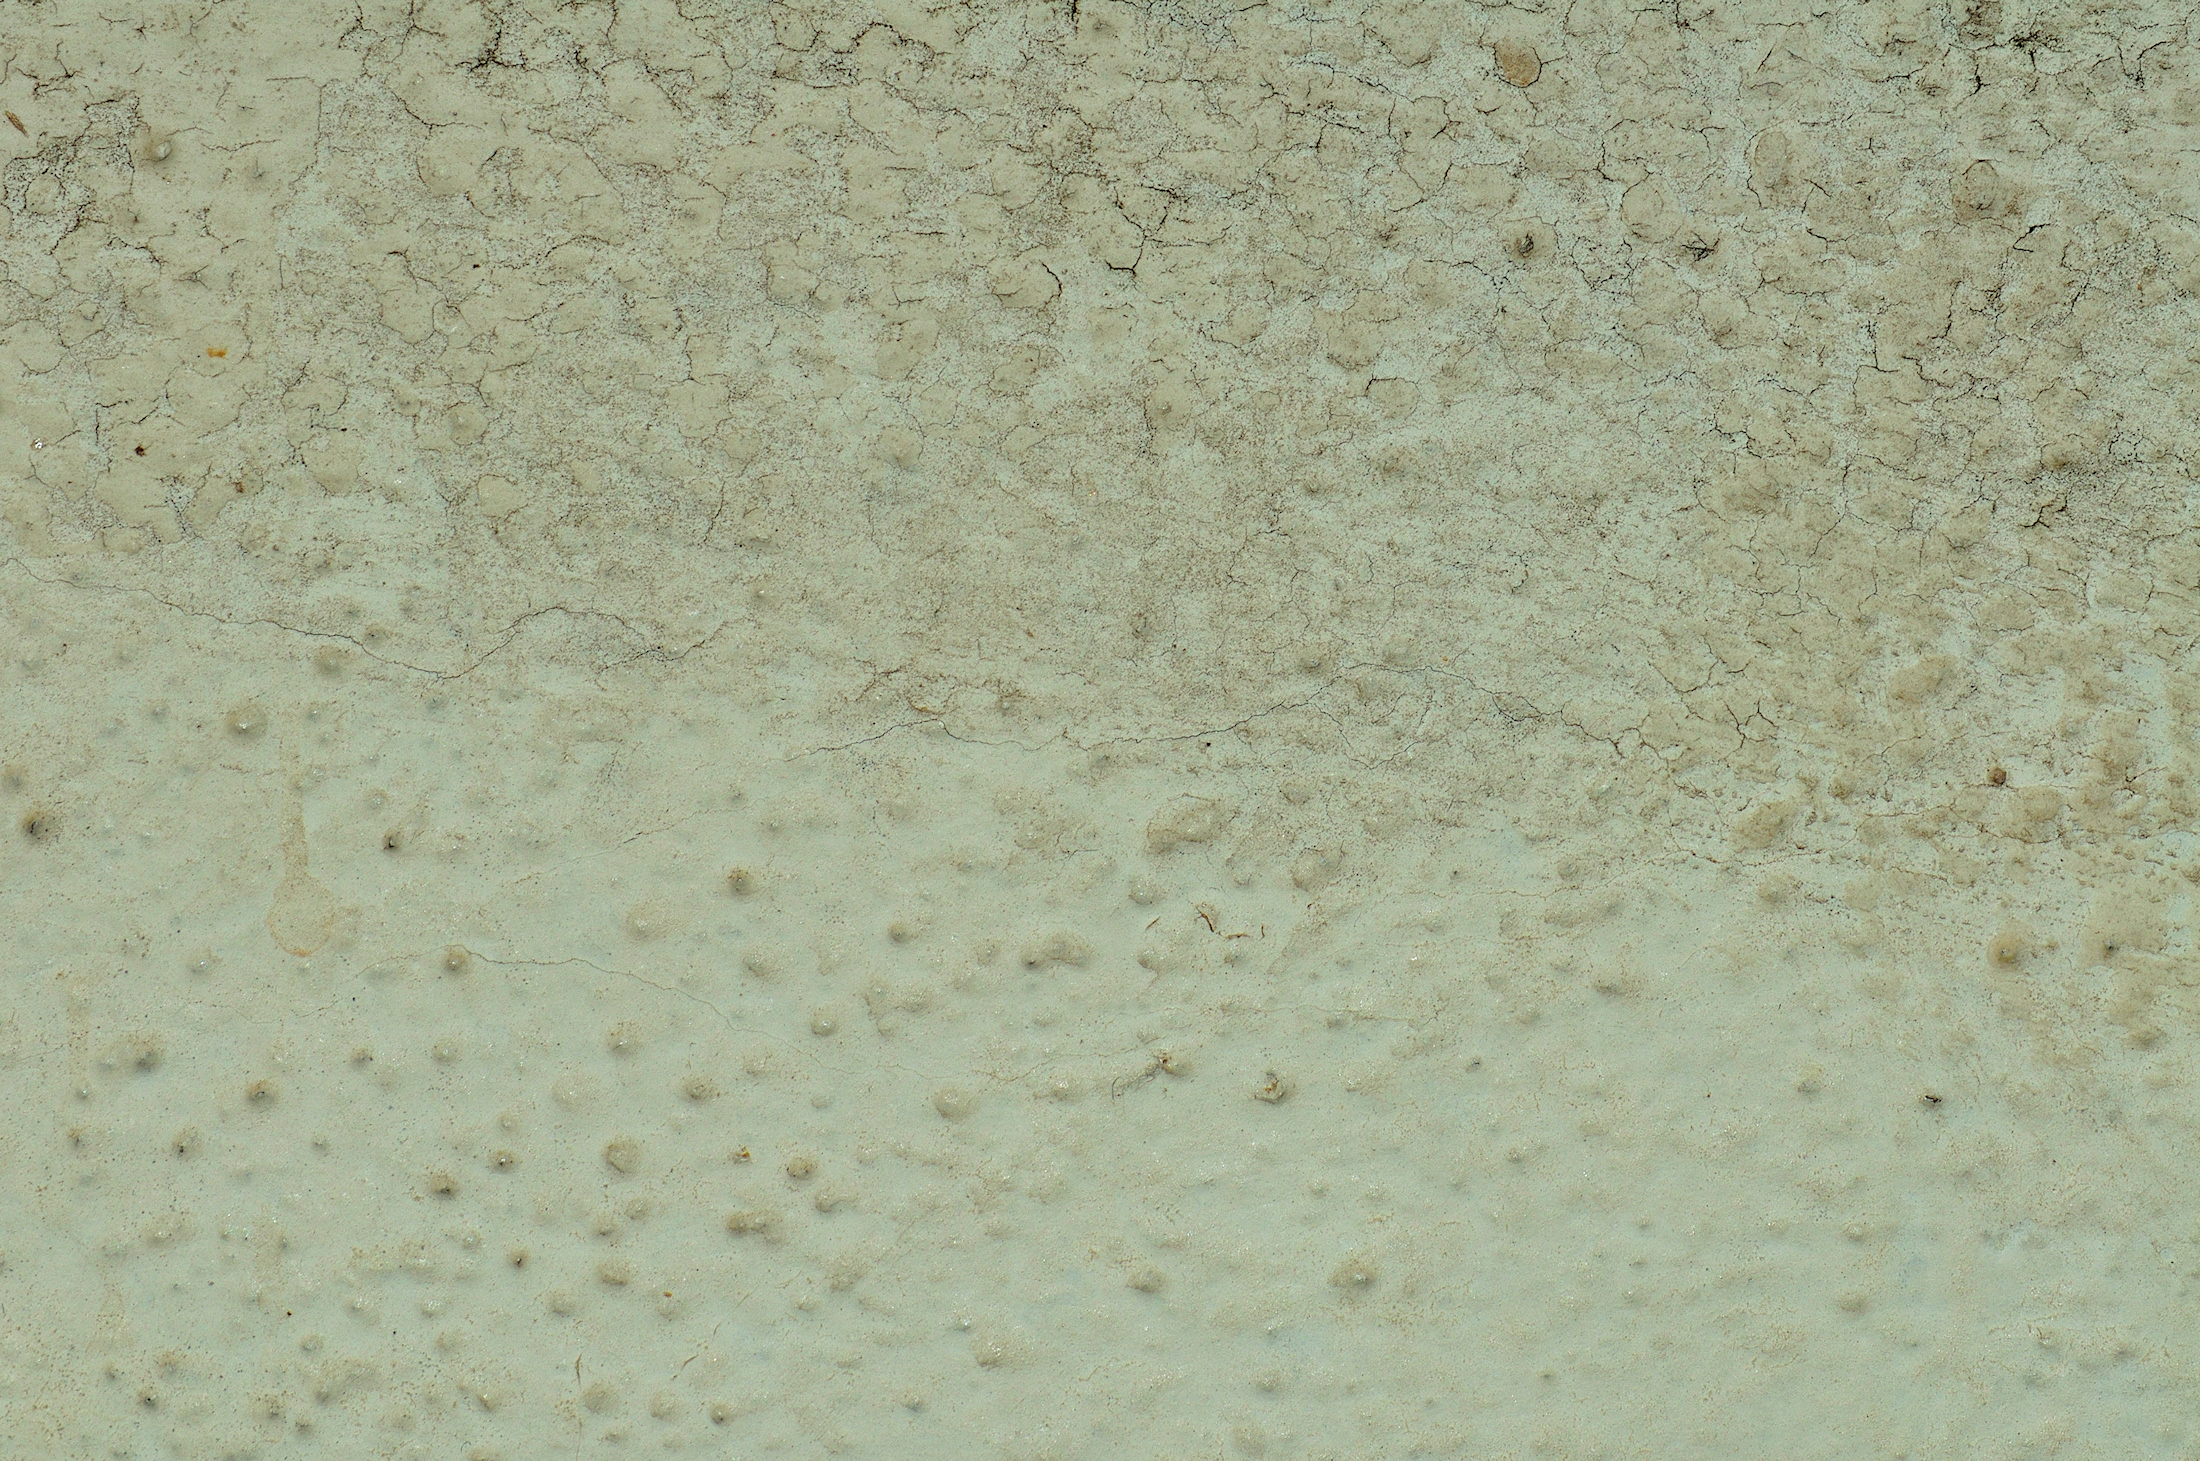 Cracked plaster, Broken, Cement, Concrete, Cracked, HQ Photo